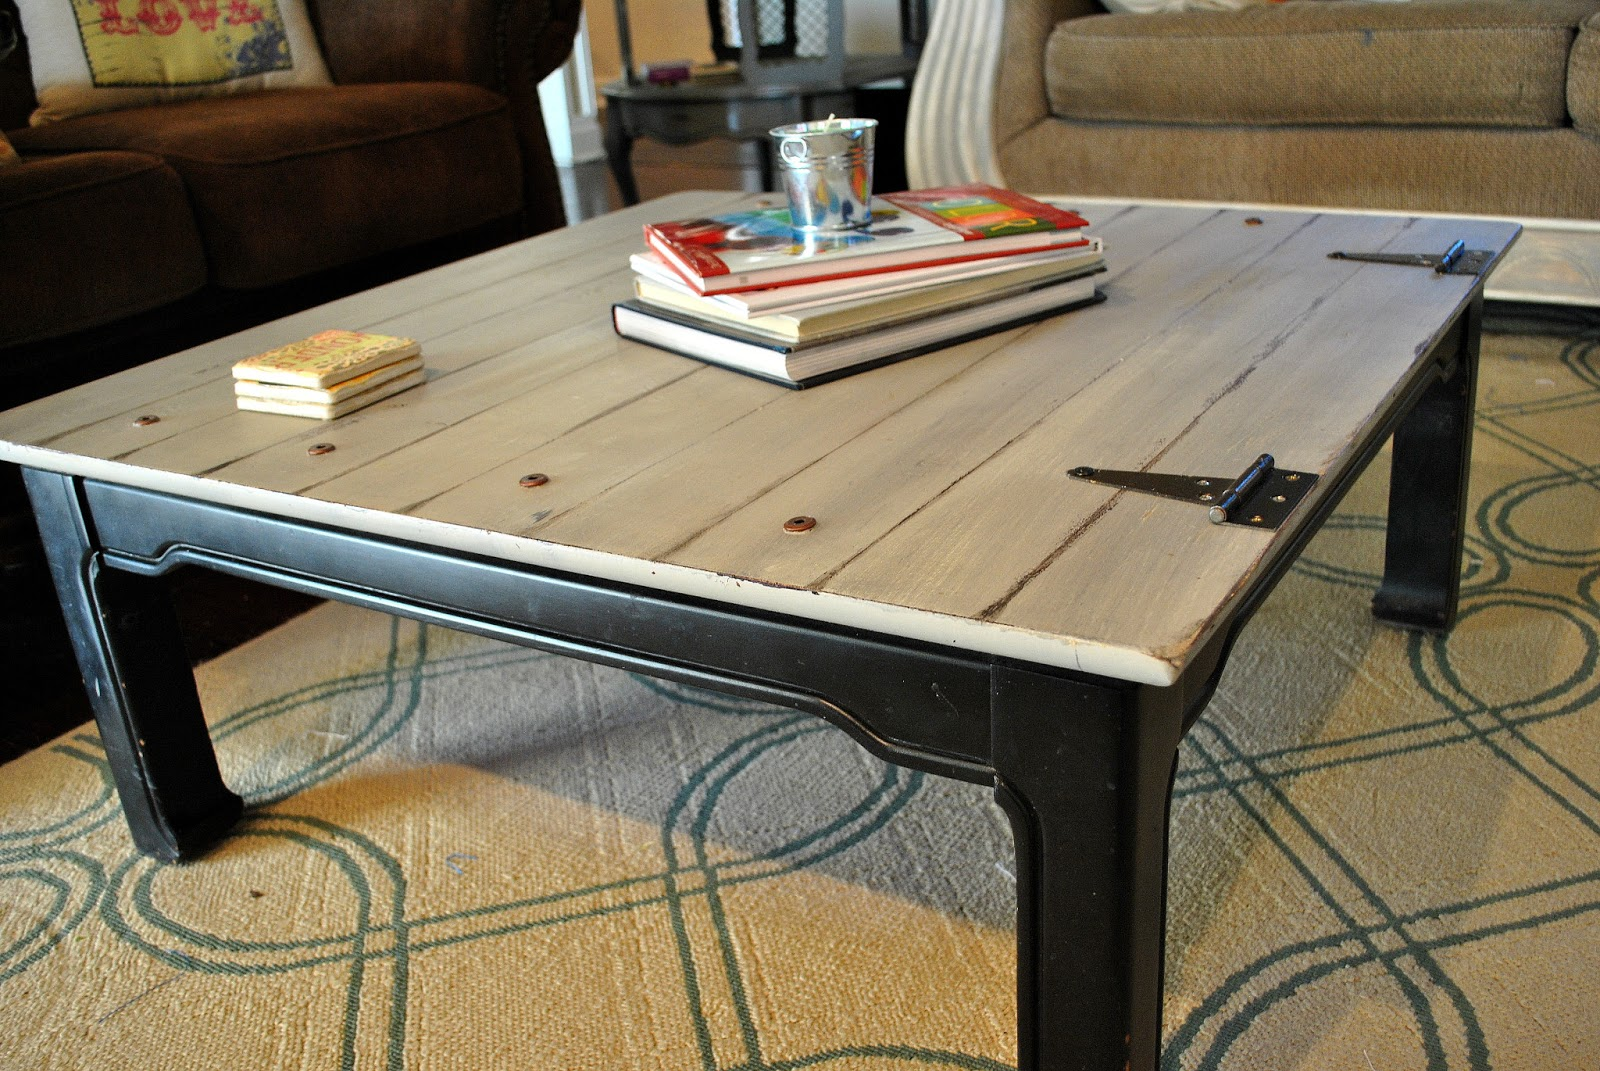 Preferred Amazing Grays: Industrial, Aged Coffee Table ReDo DX95